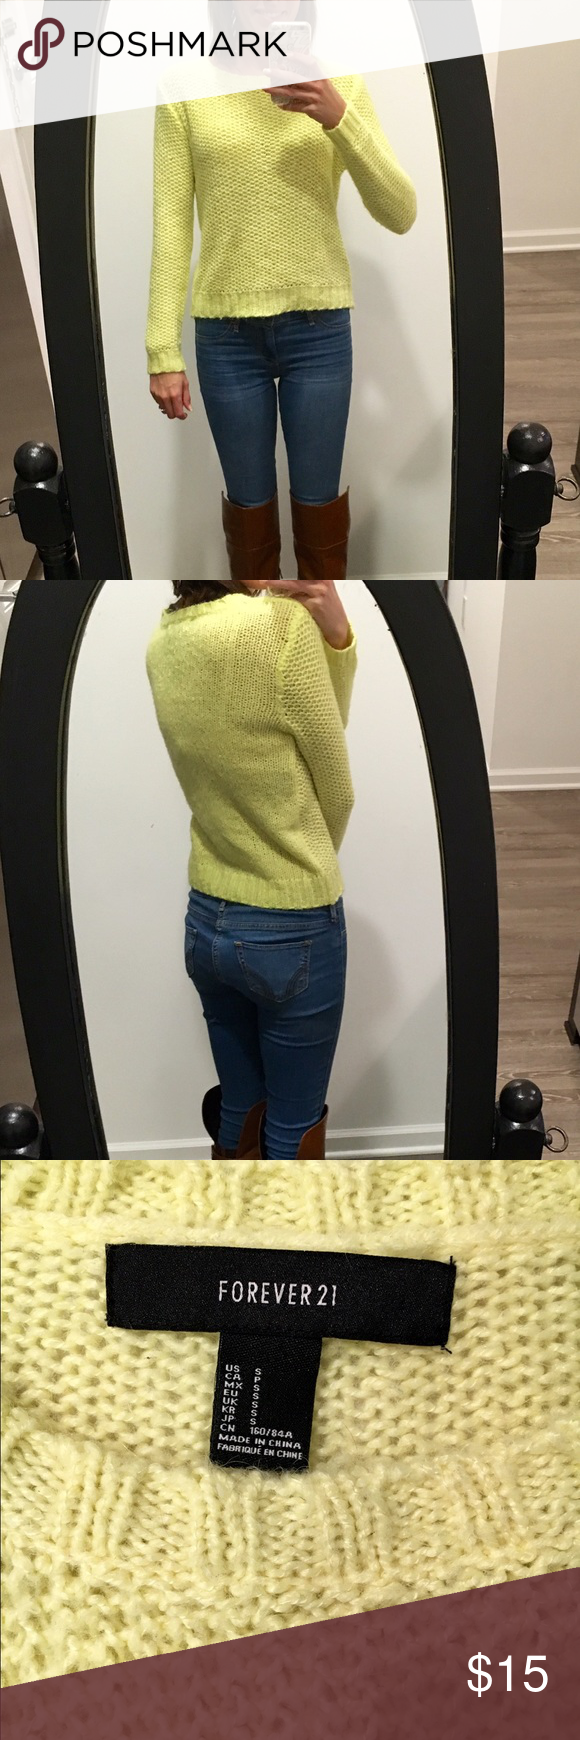 Forever 21 Knit Sweater Forever 21 Knit Sweater - size small - color yellow - great condition! Forever 21 Sweaters